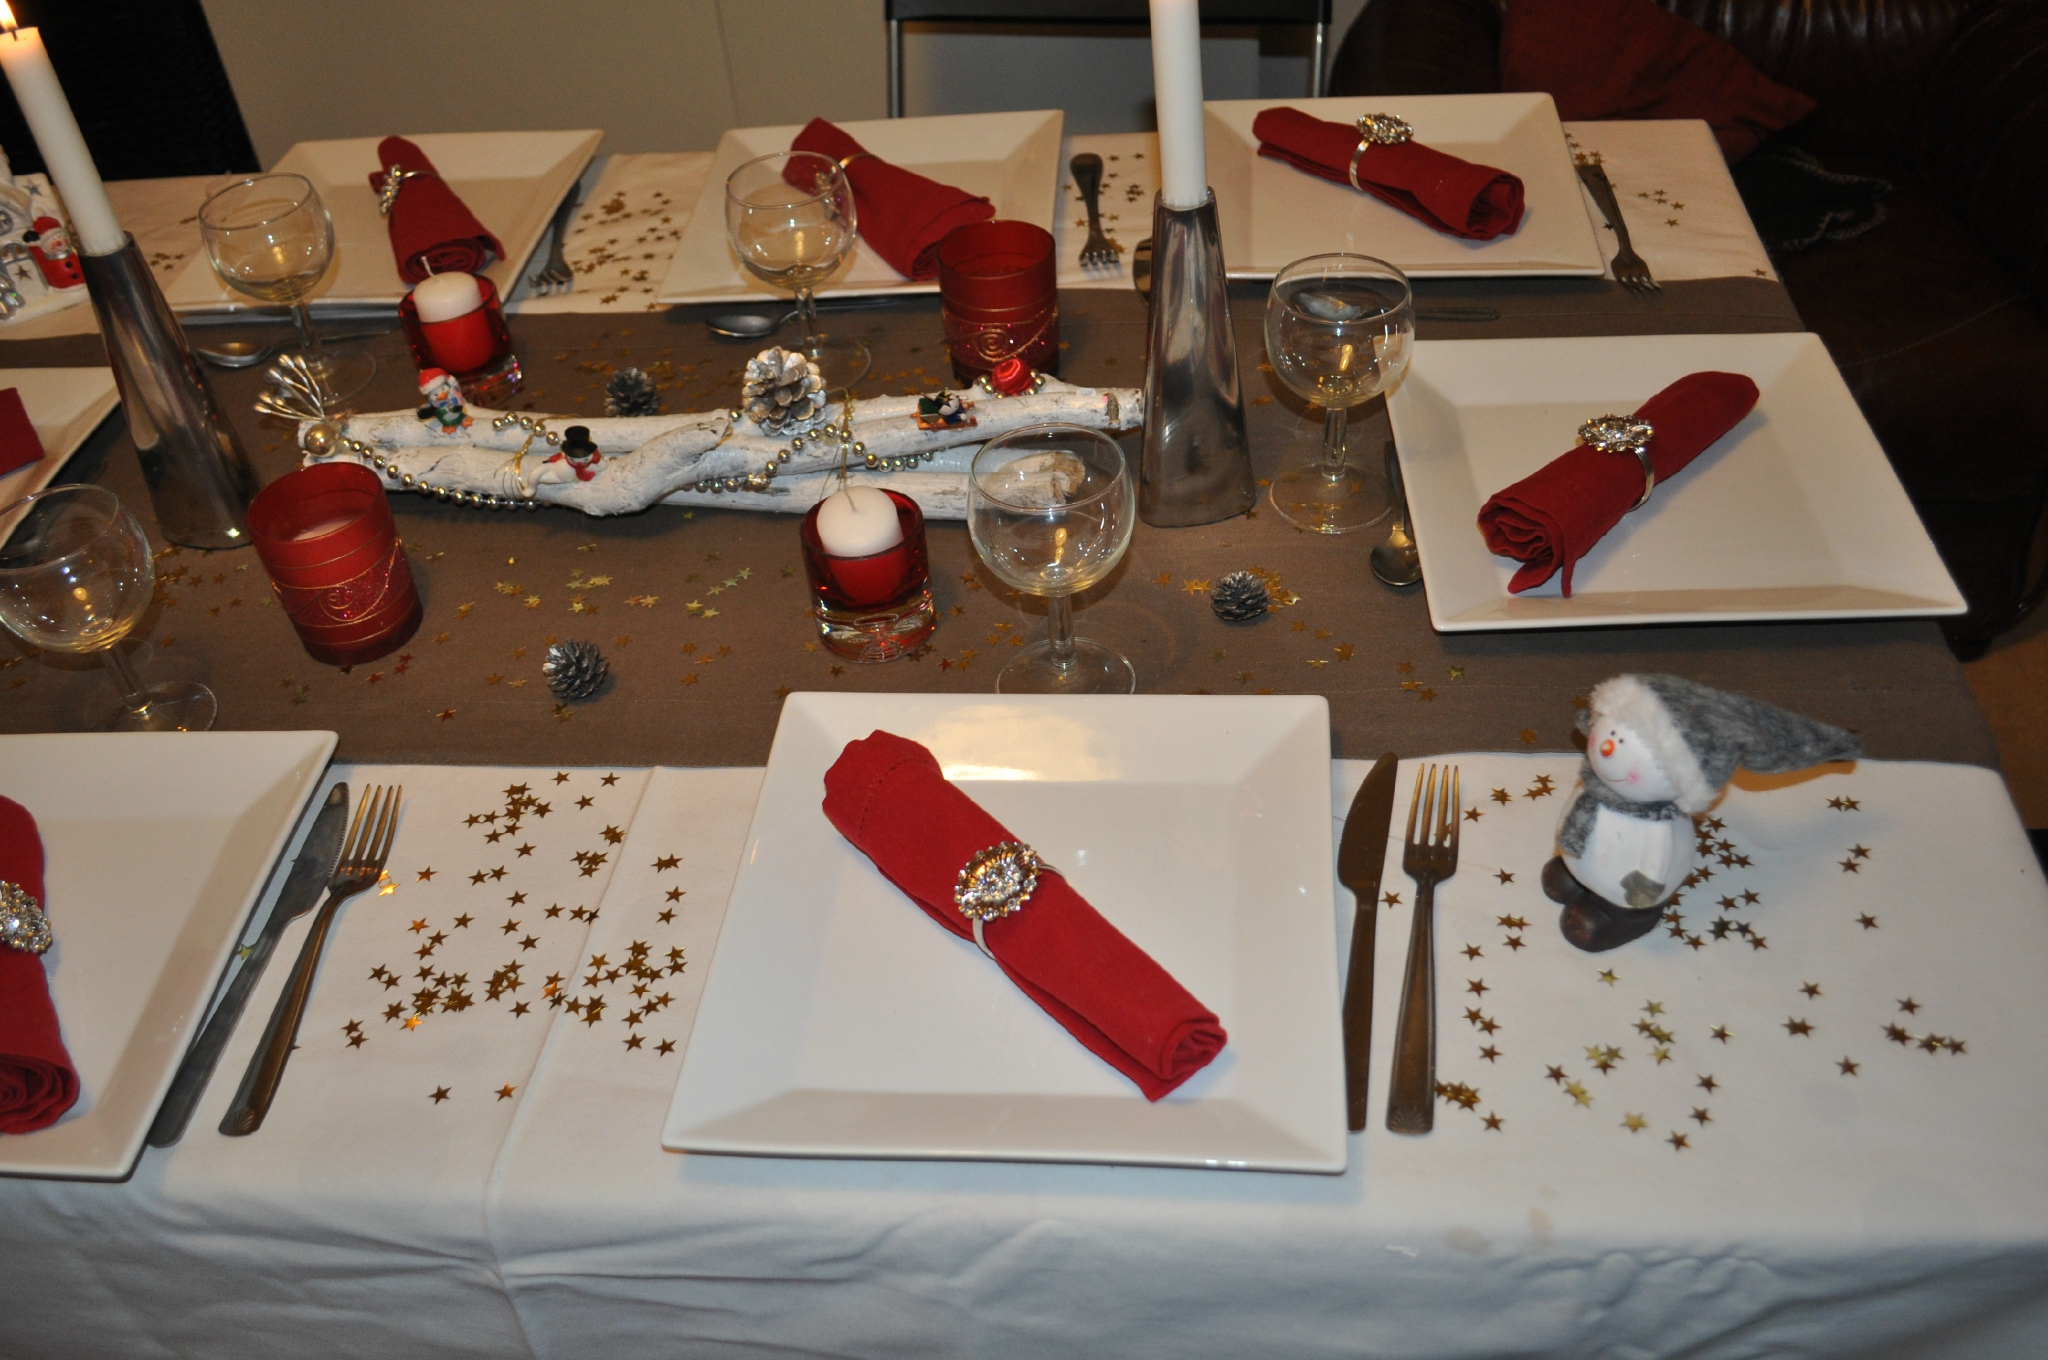 Decoration de table nouvel an 2013 les petits delices de - Decoration table reveillon jour de l an ...